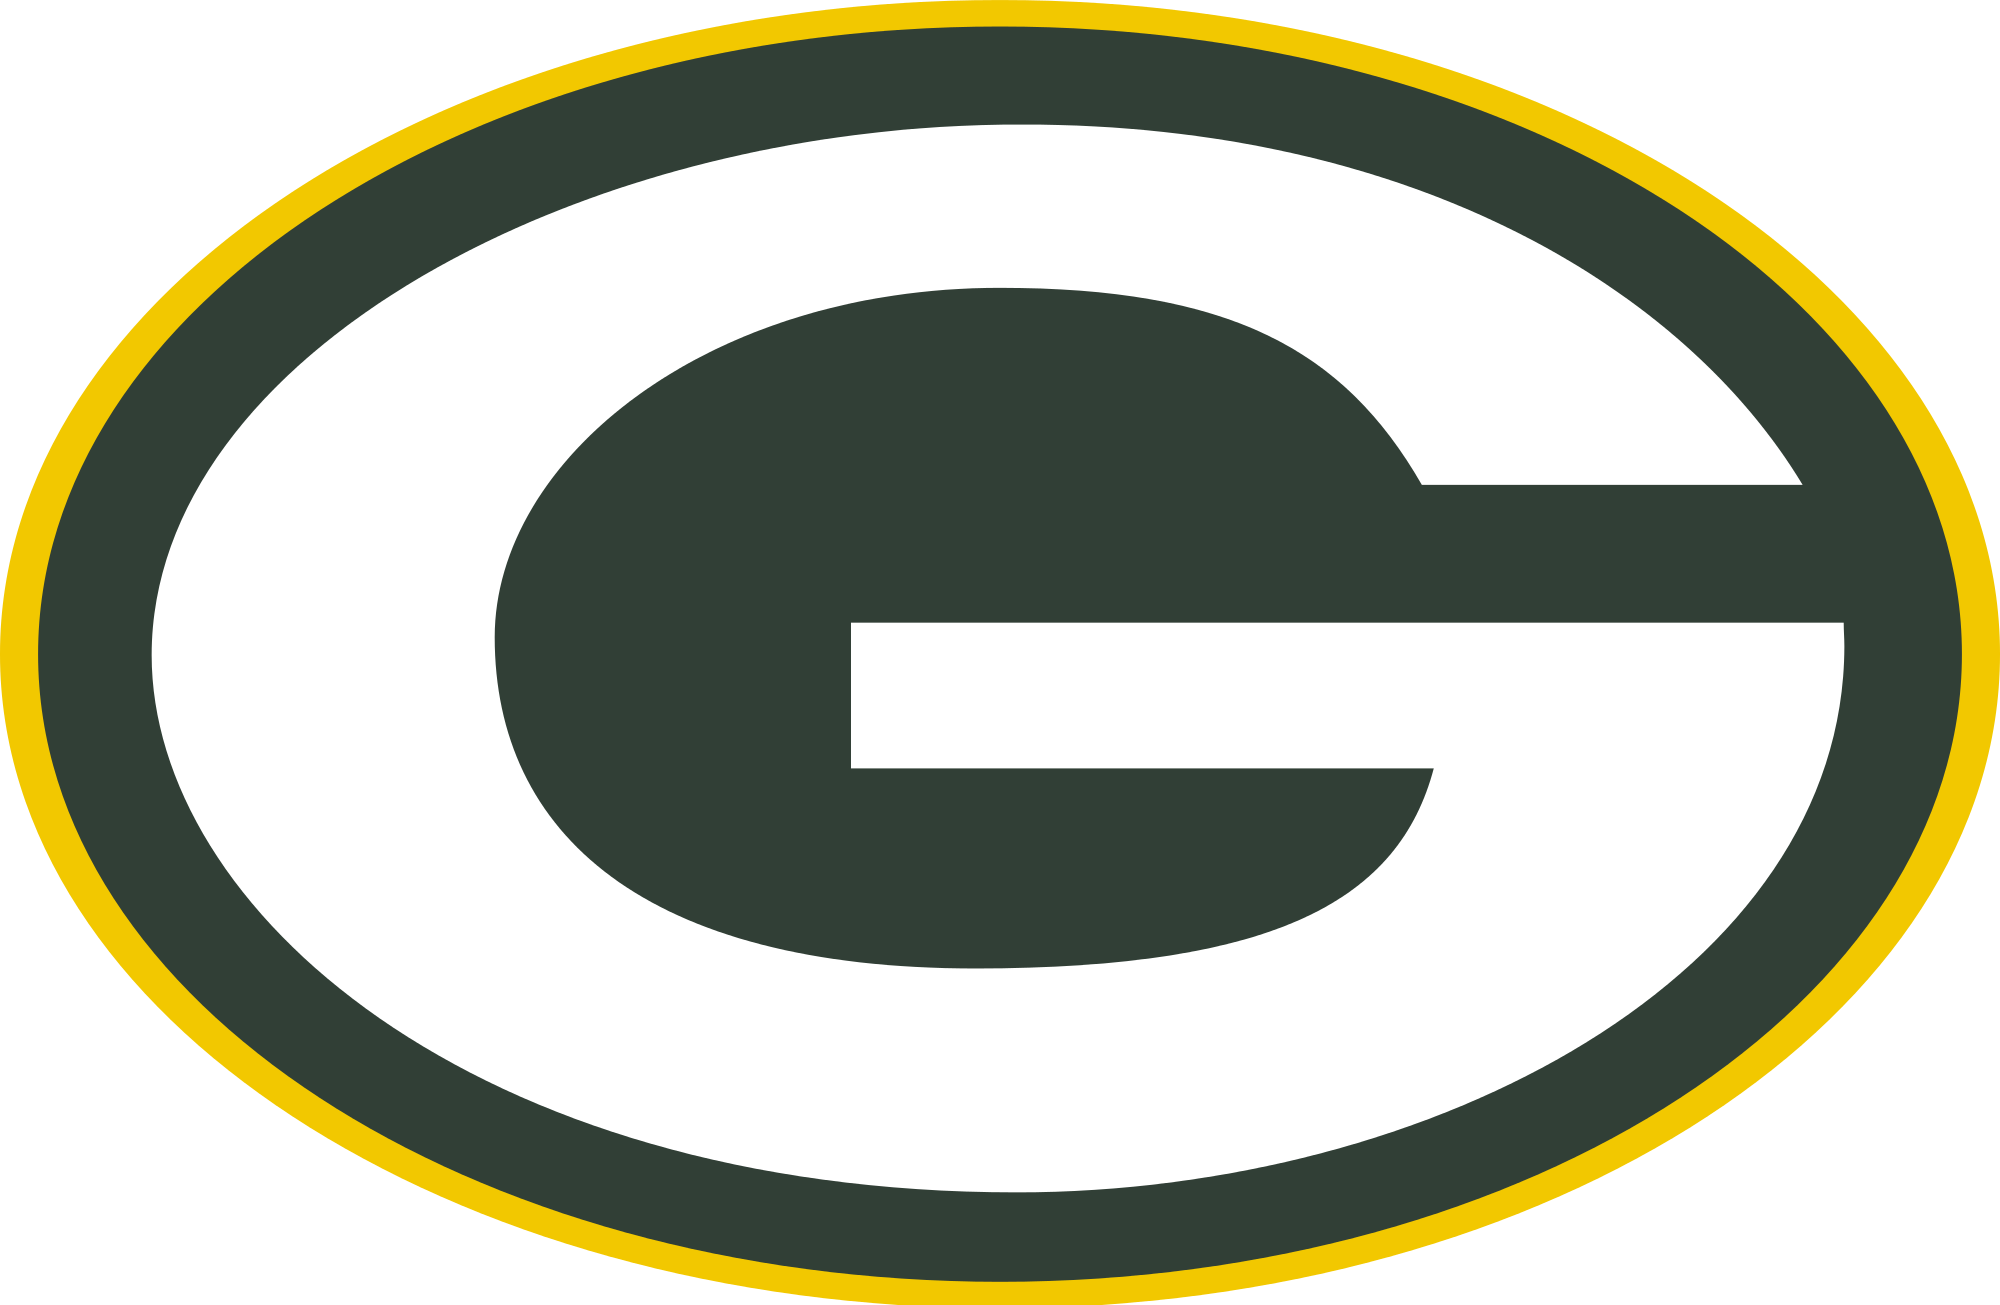 Enterprising image regarding green bay packers printable logo